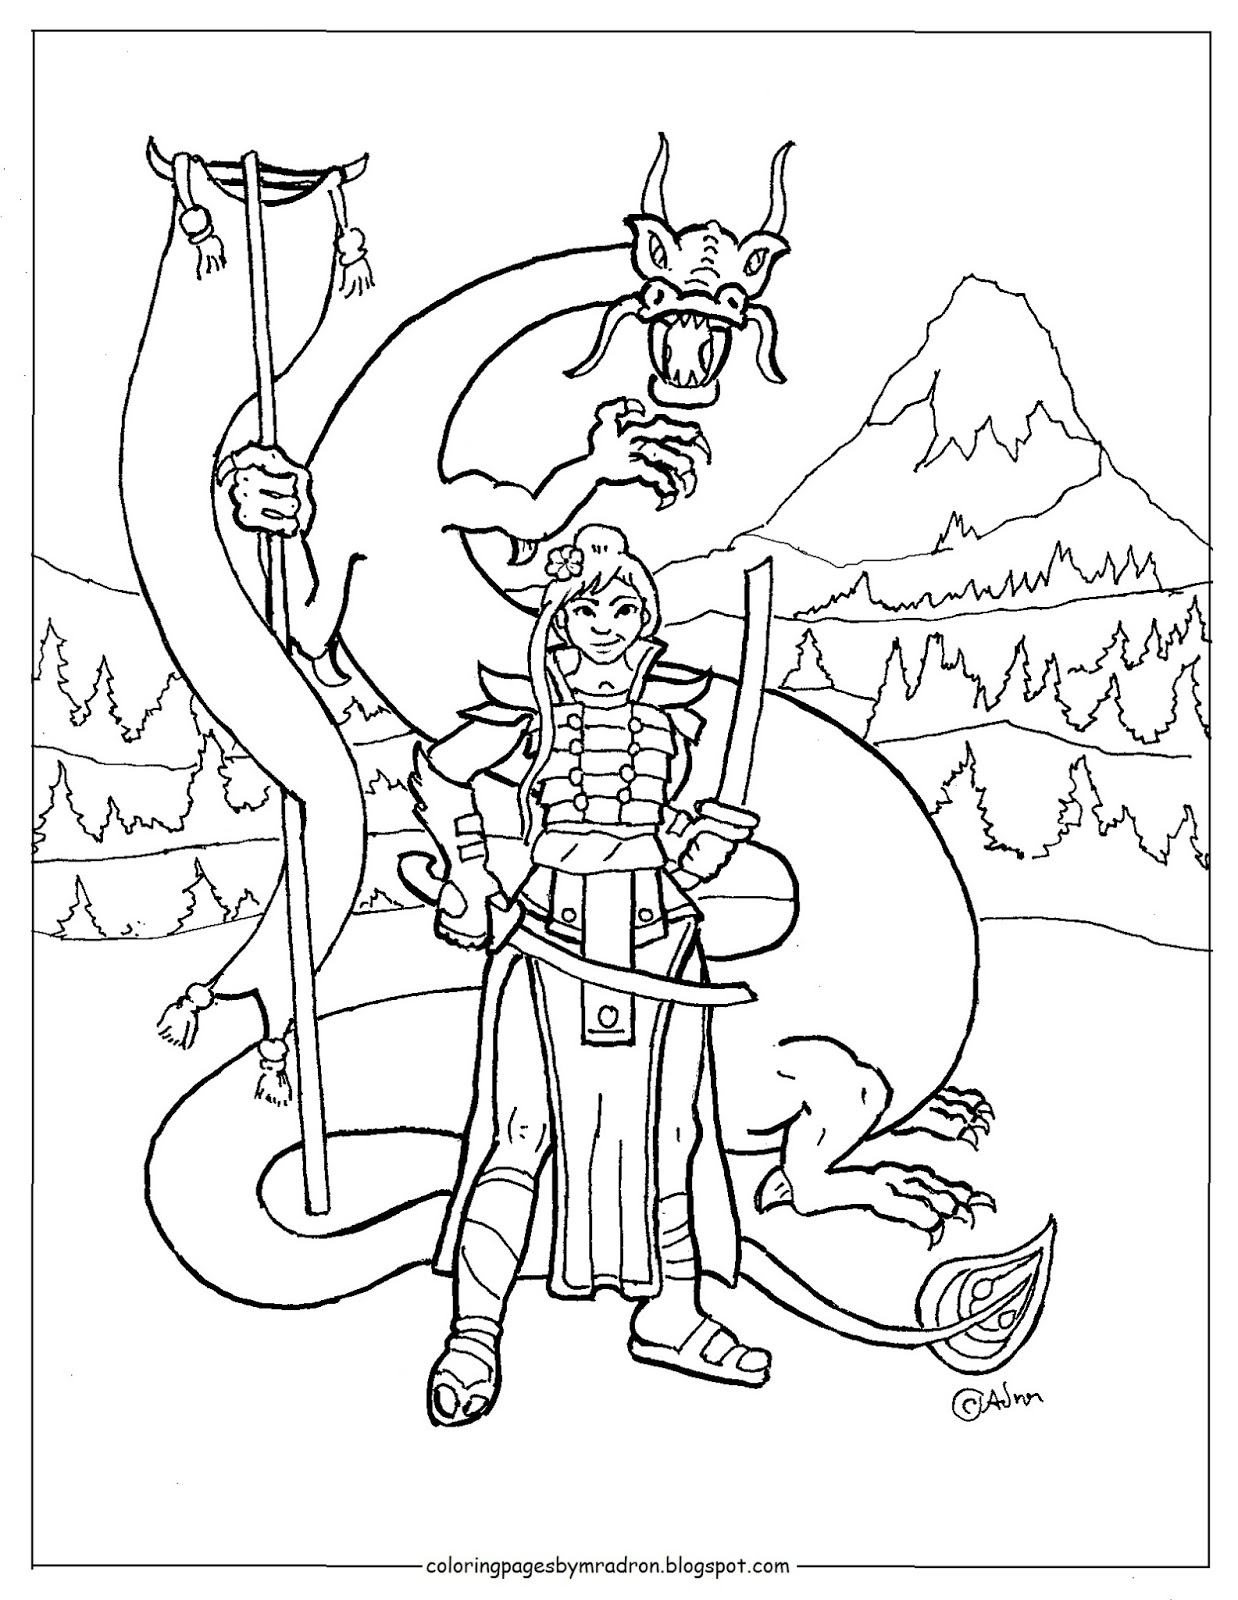 coloring pages for kids by mr adron printable mulan ninja